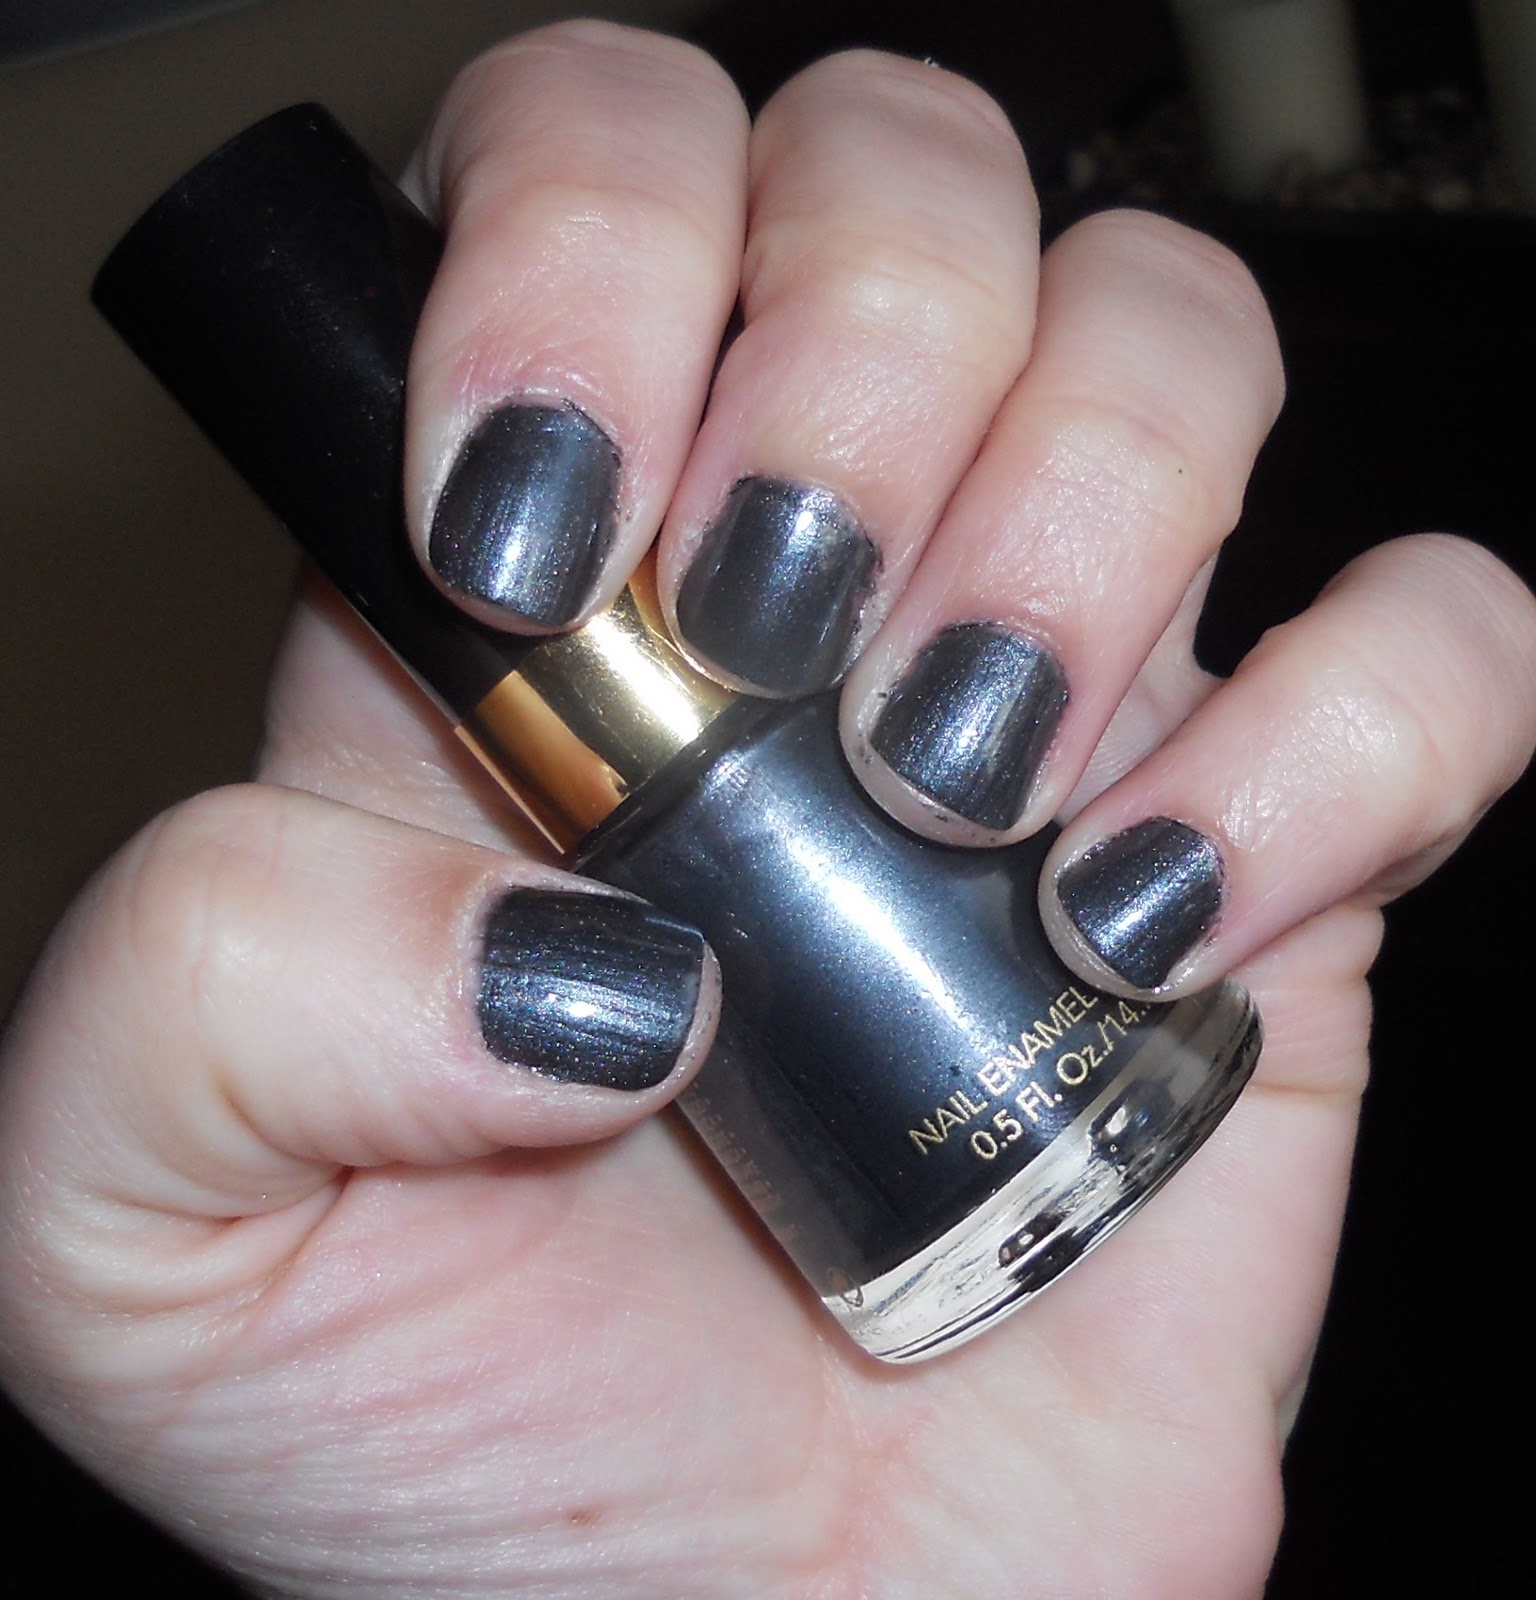 Weighing down on beauty revlon fashion night pout lipstick gaga revlon black pearl this is 3 coats of the nail polish it was not streaky at all and applied evenly on to each nail nvjuhfo Image collections